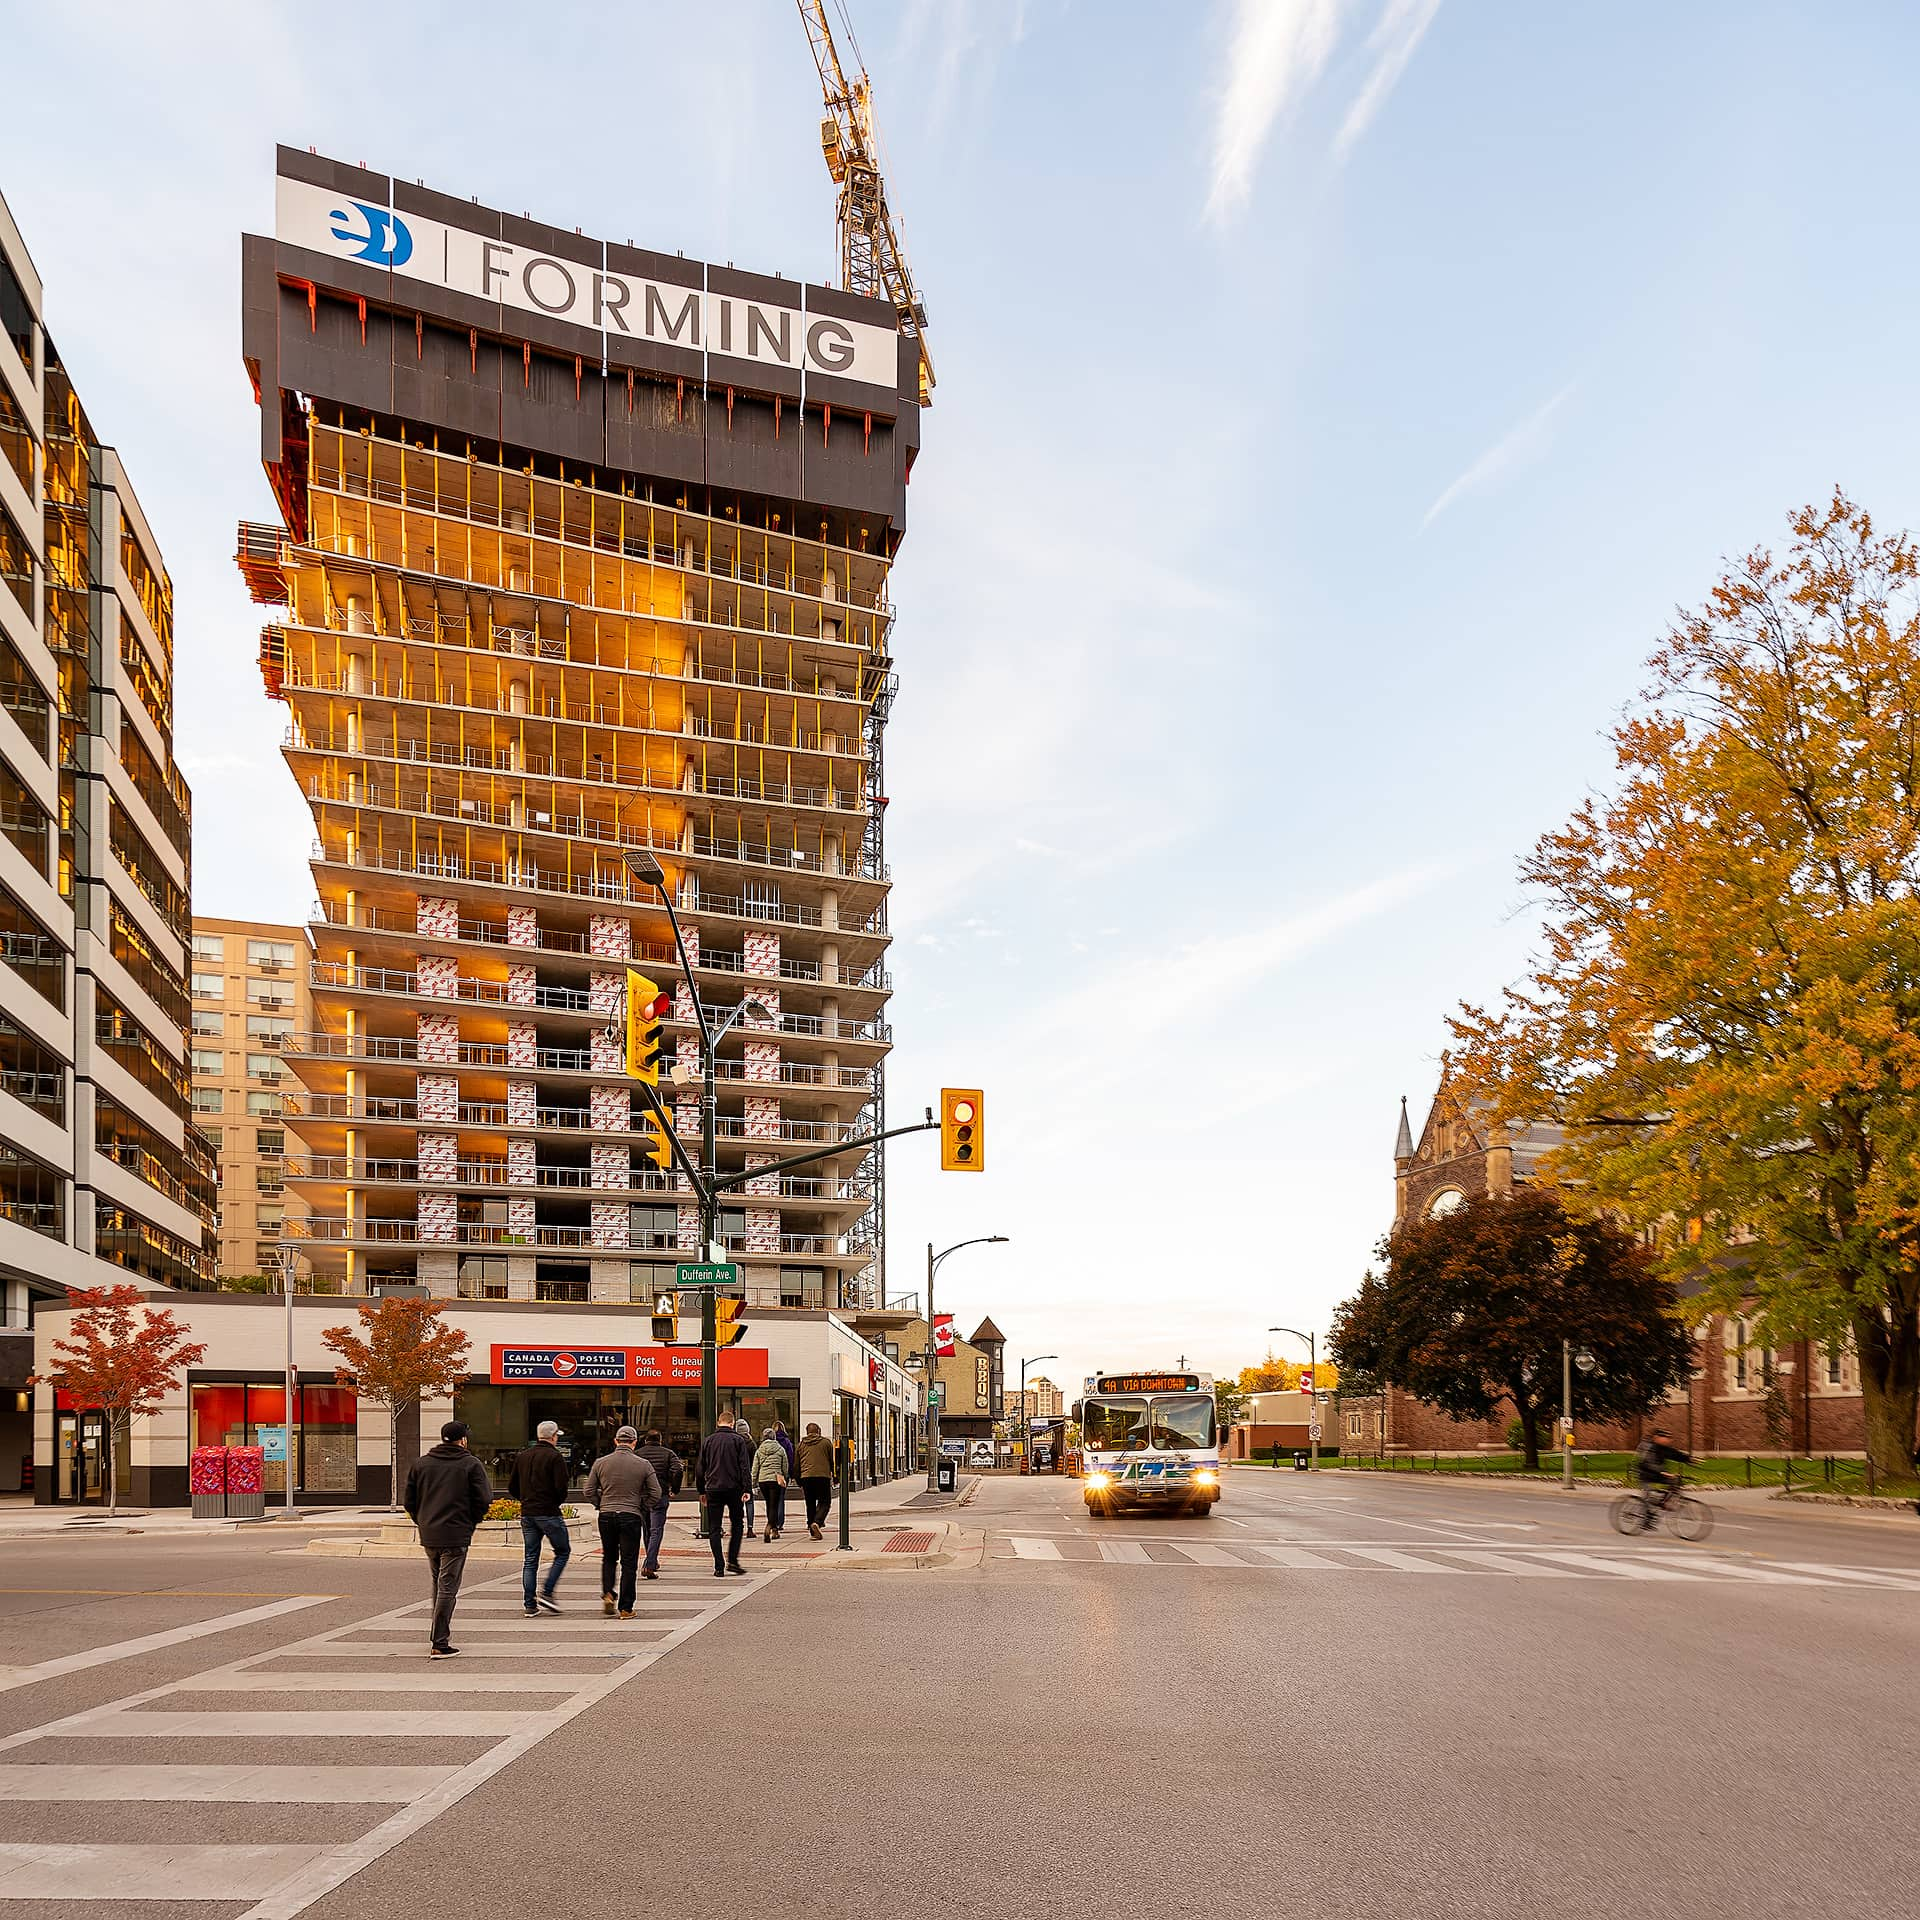 Looking towards 515 Richmond Street Building as it is under construction and there is activity on the street